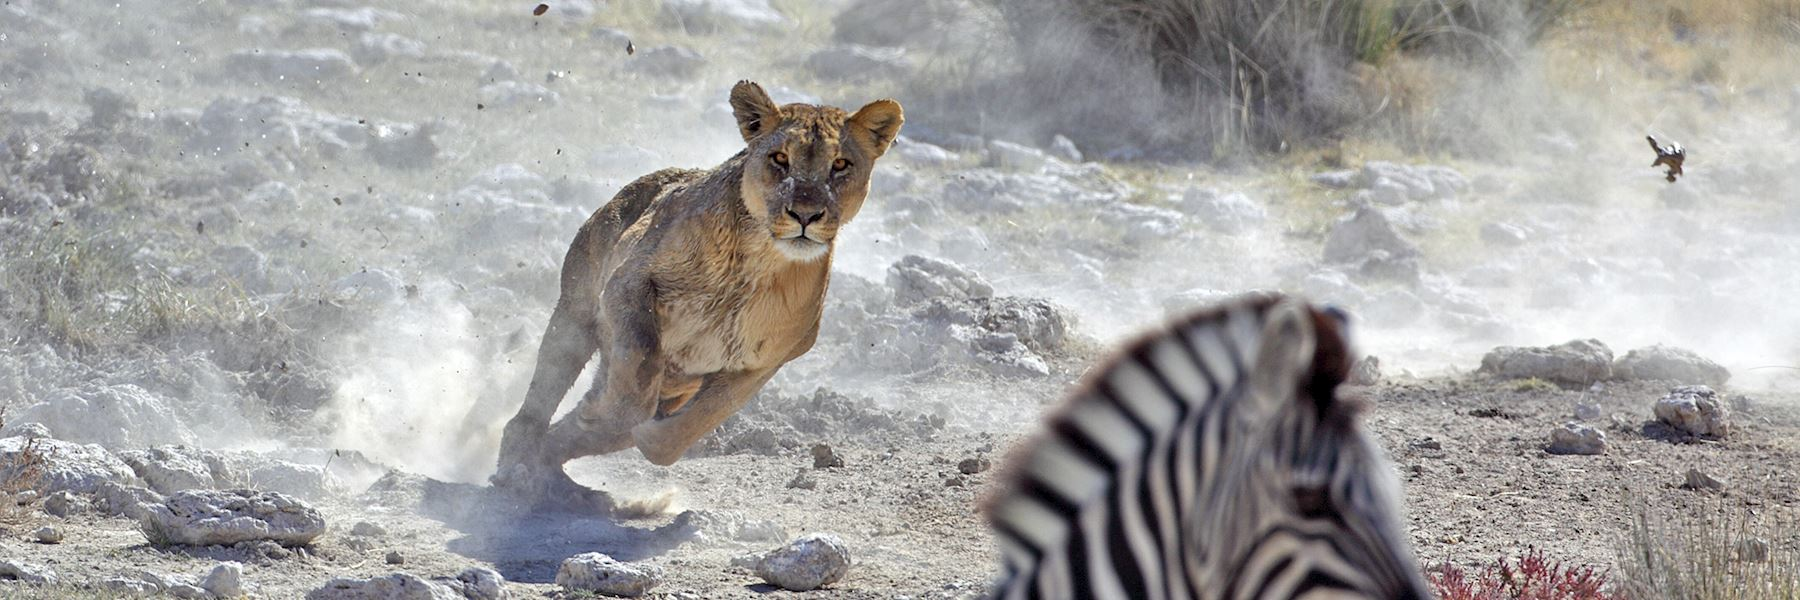 Namibia travel guides